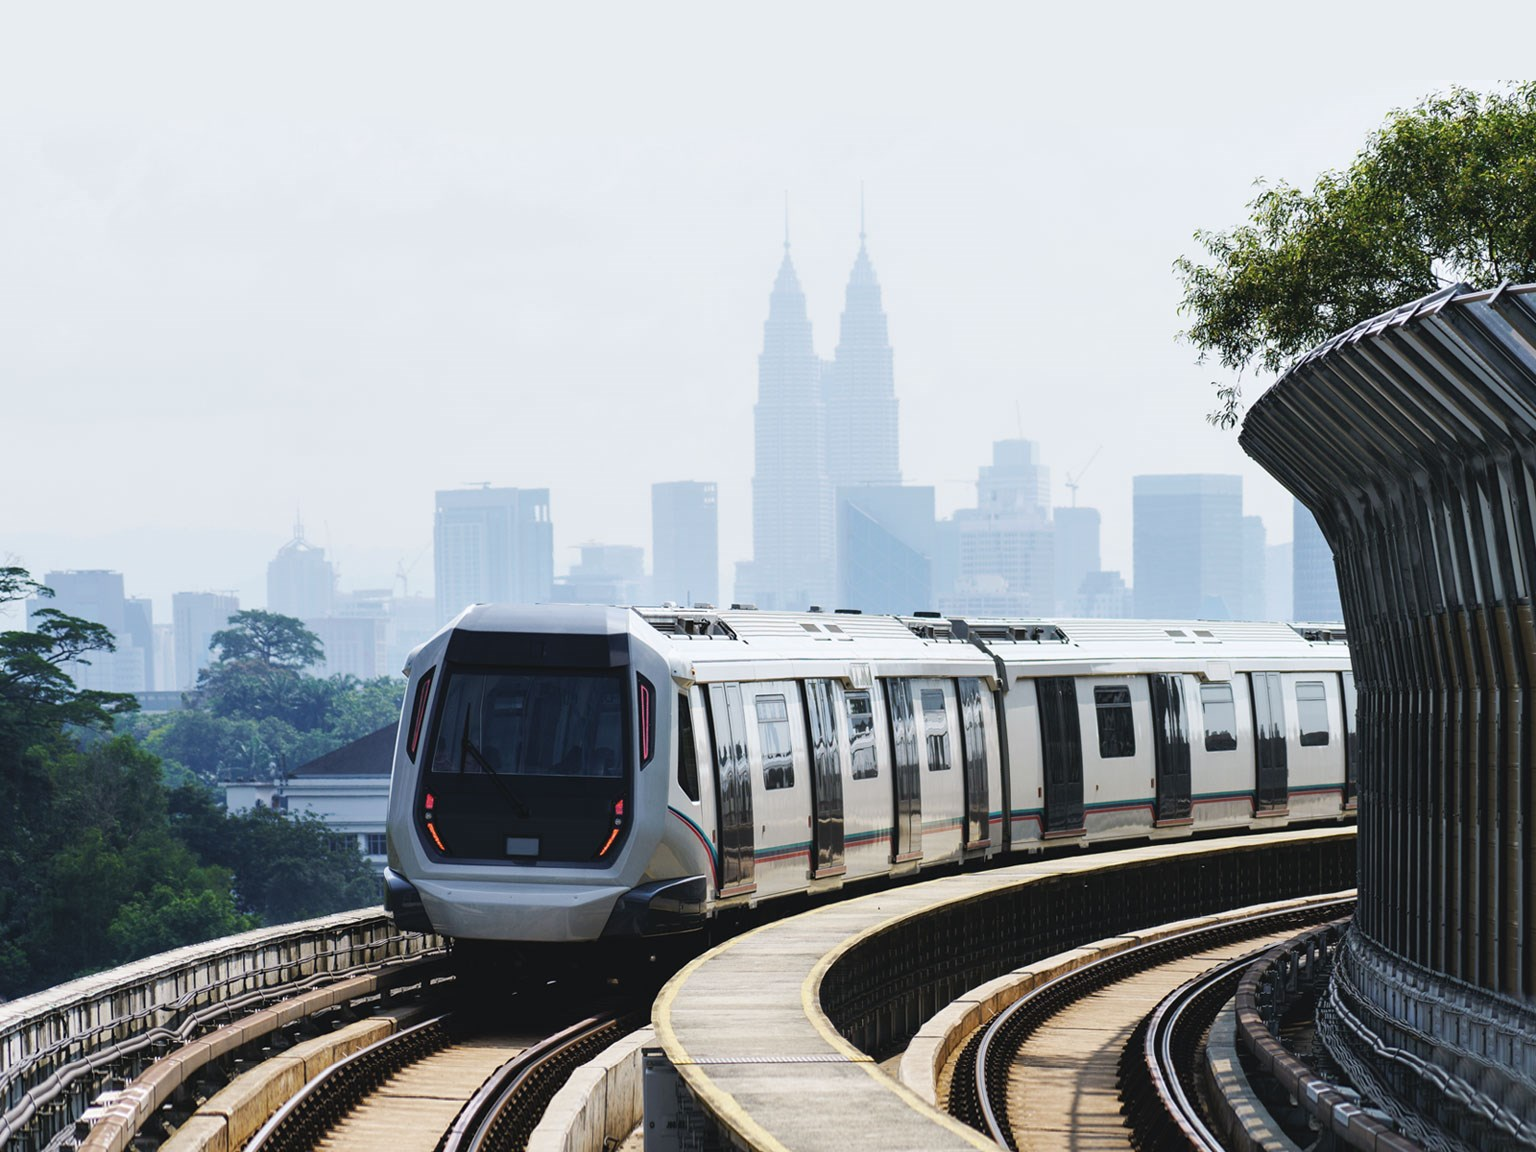 Transit investments in an age of uncertainty